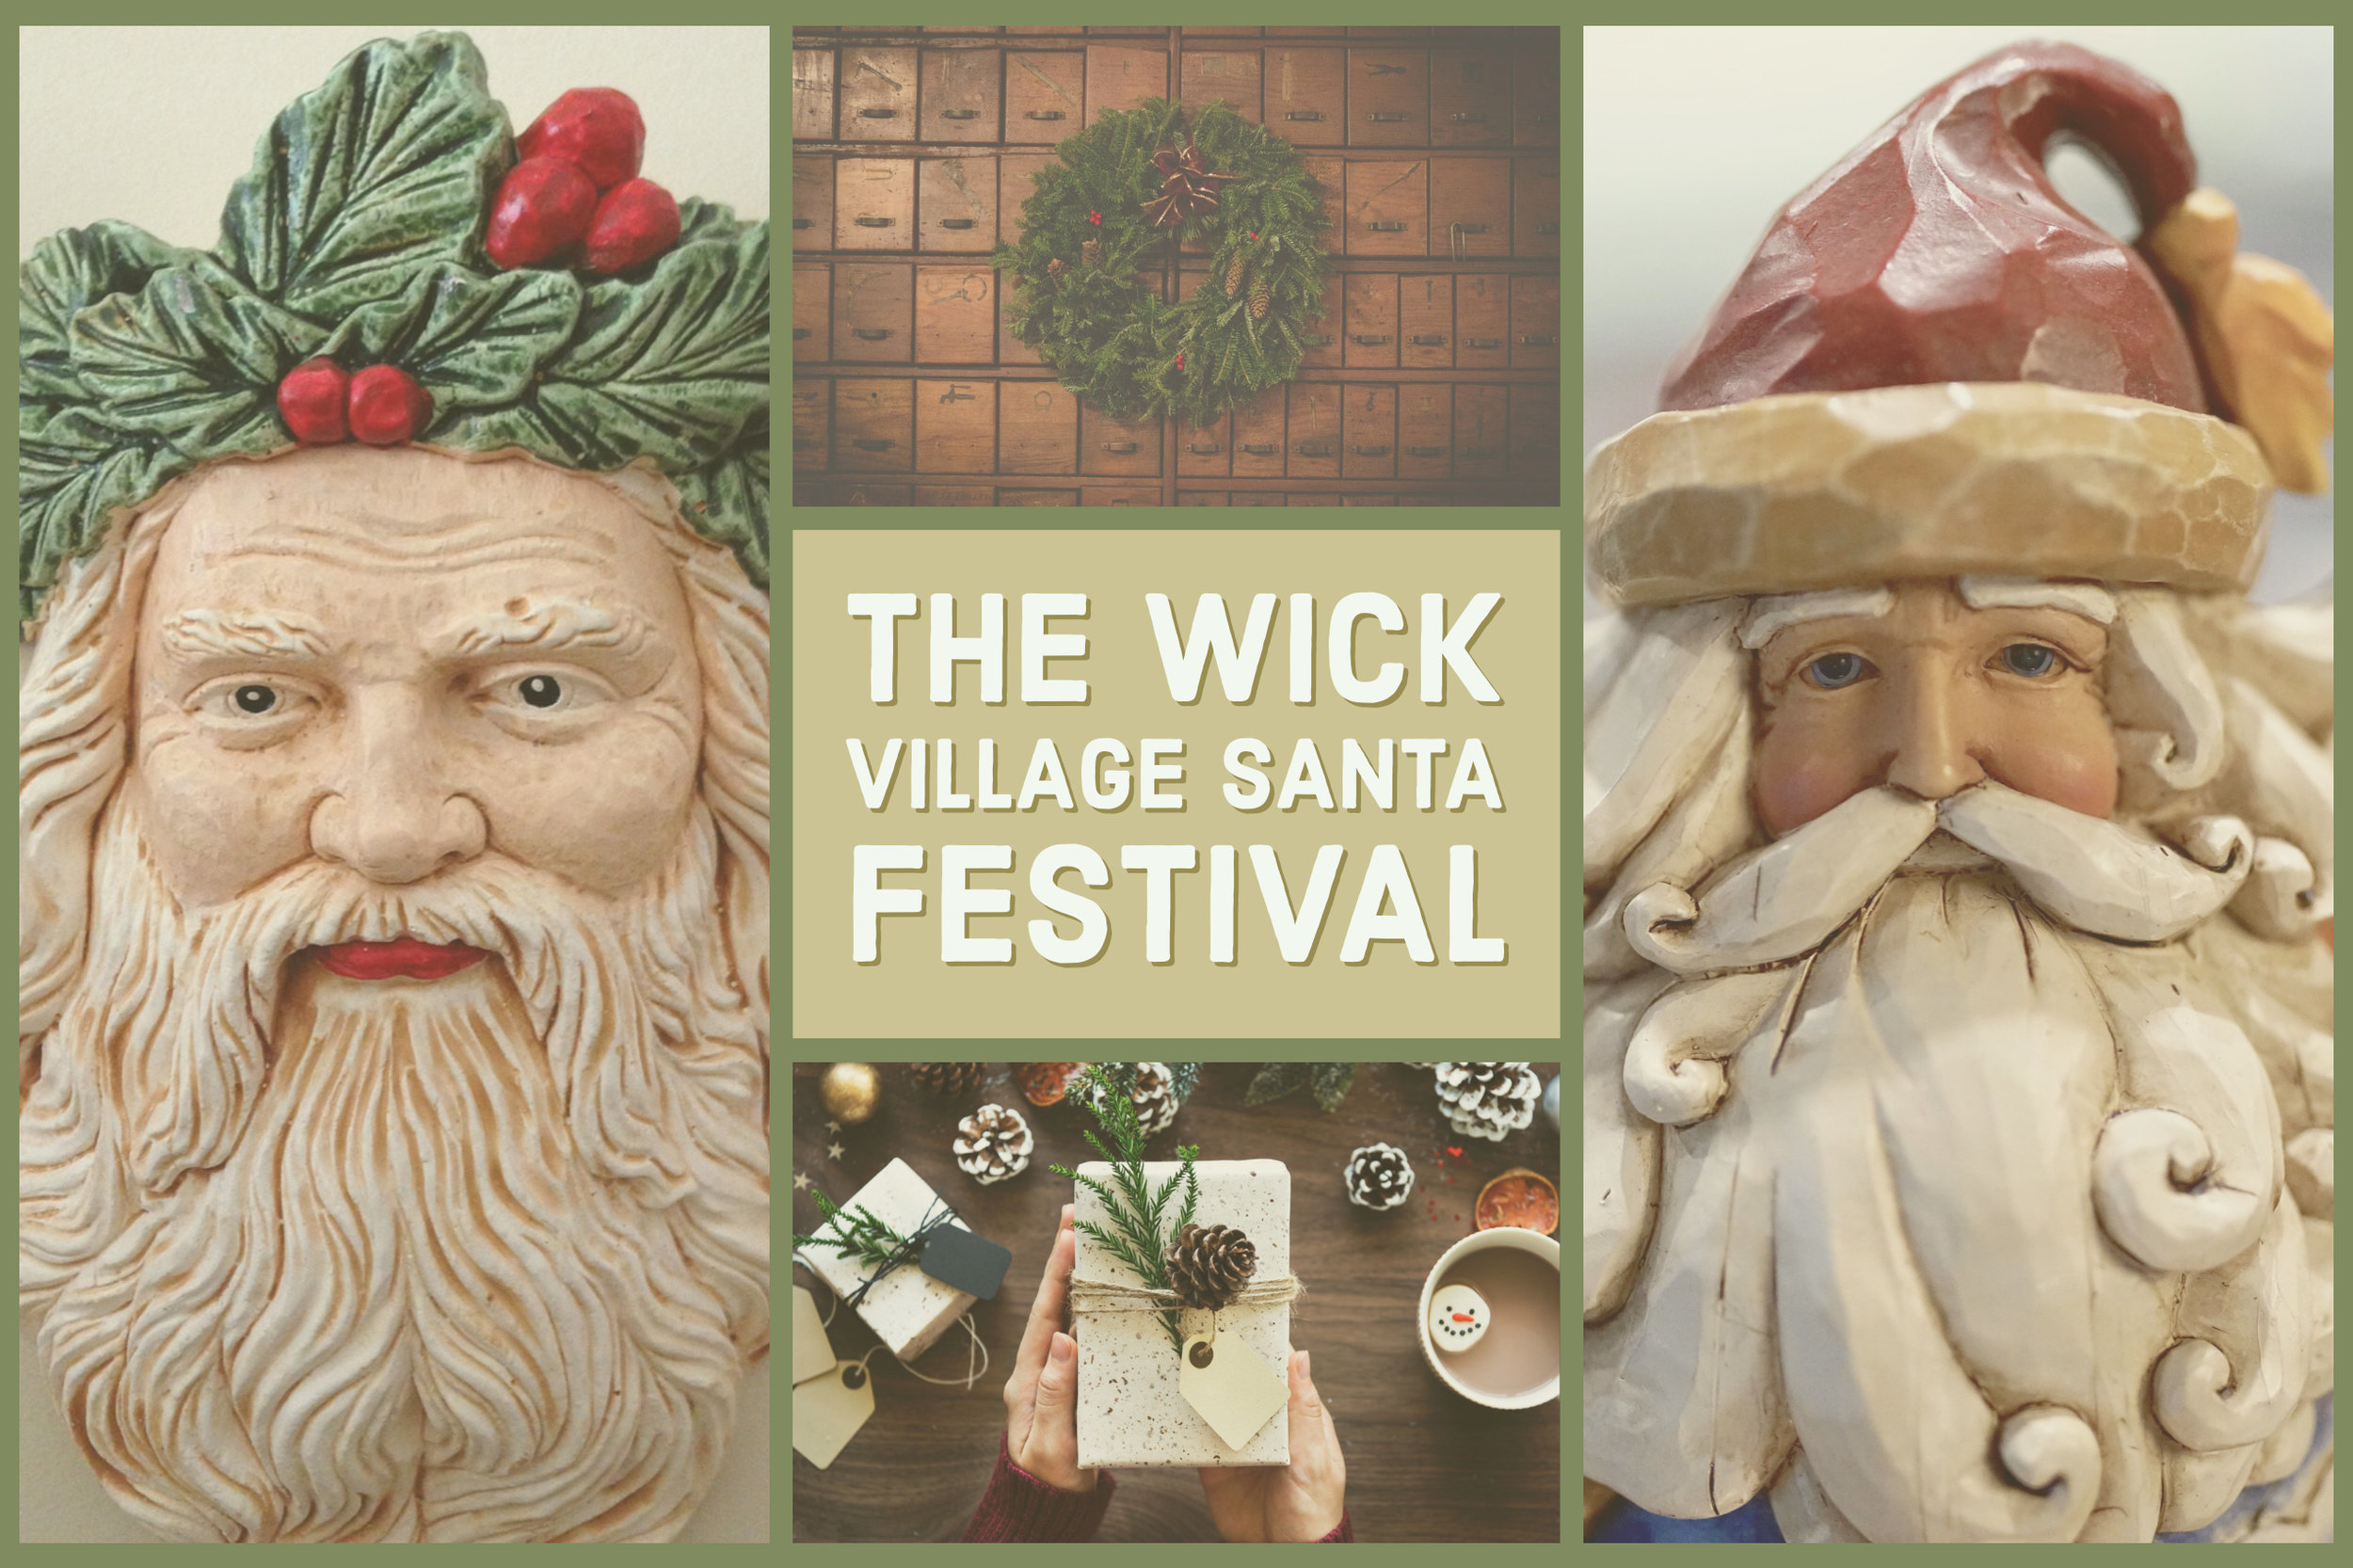 Take part in the Wick Village Santa Festival this Christmas.